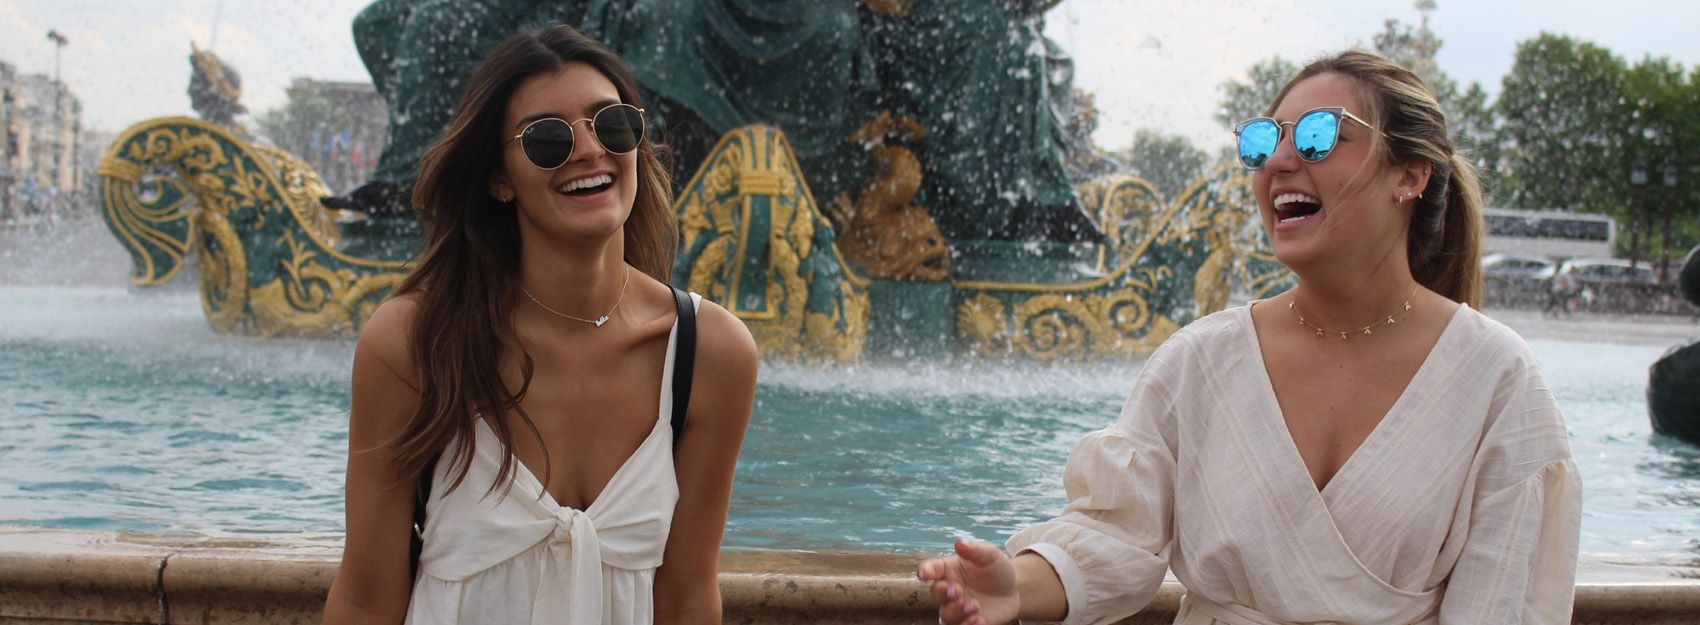 two students laughing and throwing a coin in a fountain at place de la concorde in paris, france